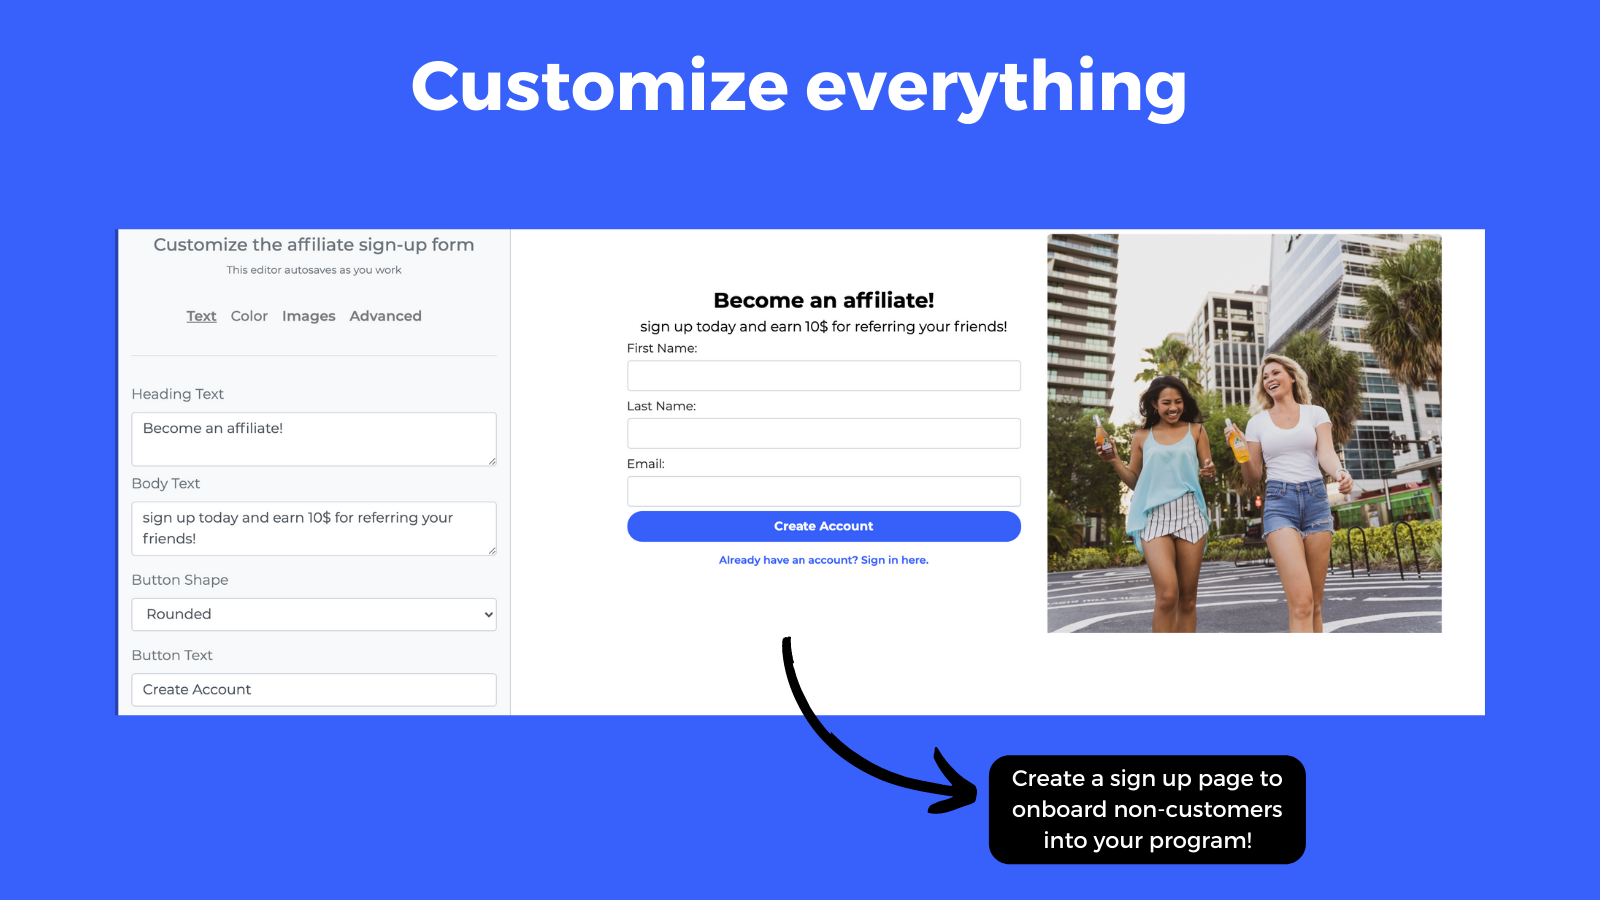 Customize the affiliate sign up form